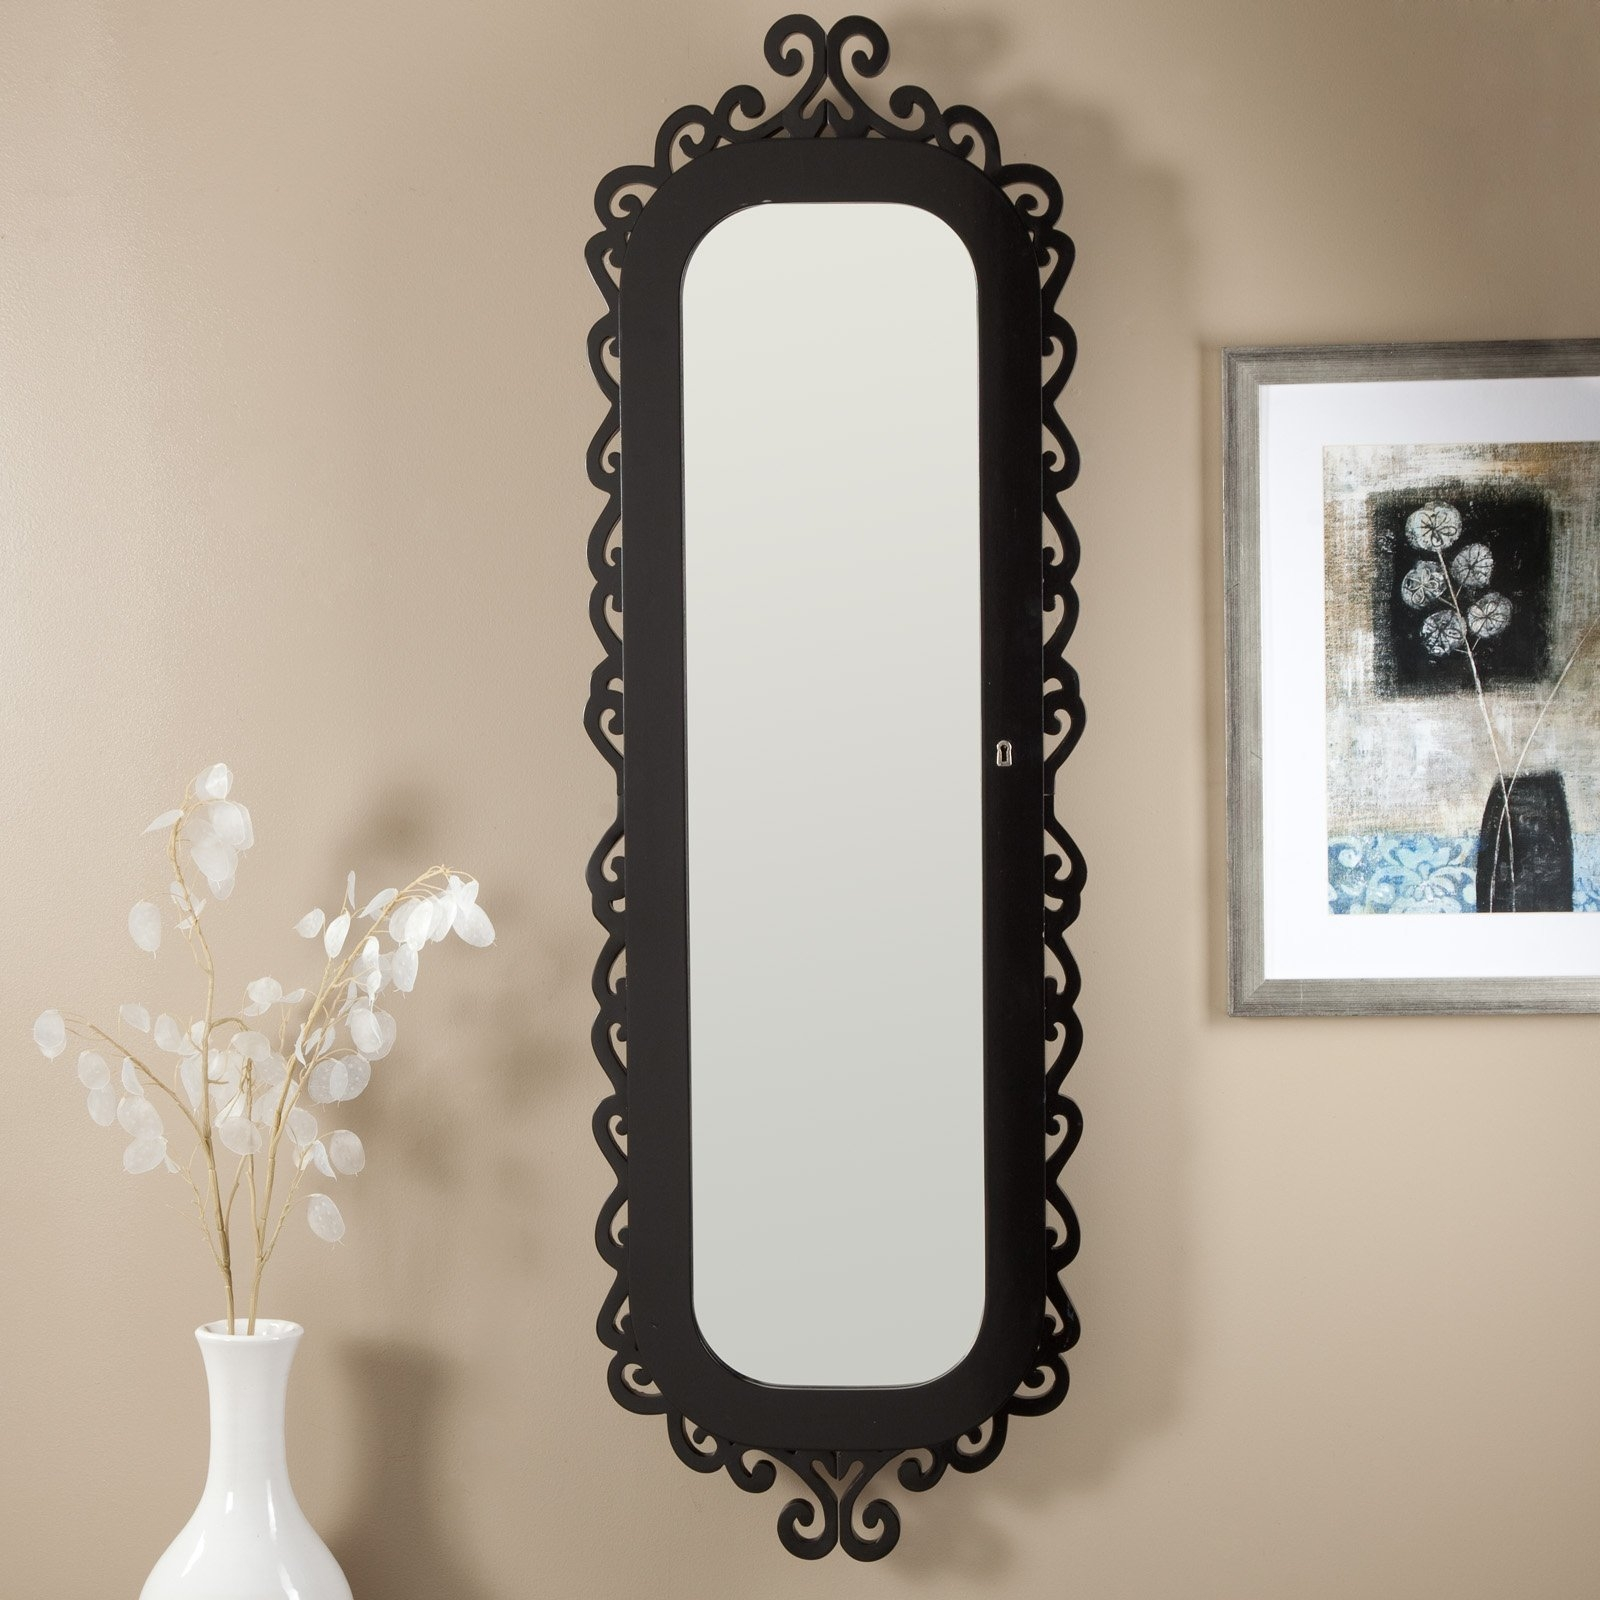 Buy Bathroom Mirrors Online Creative Bathroom Decoration For Buy Vintage Mirror (Image 5 of 15)